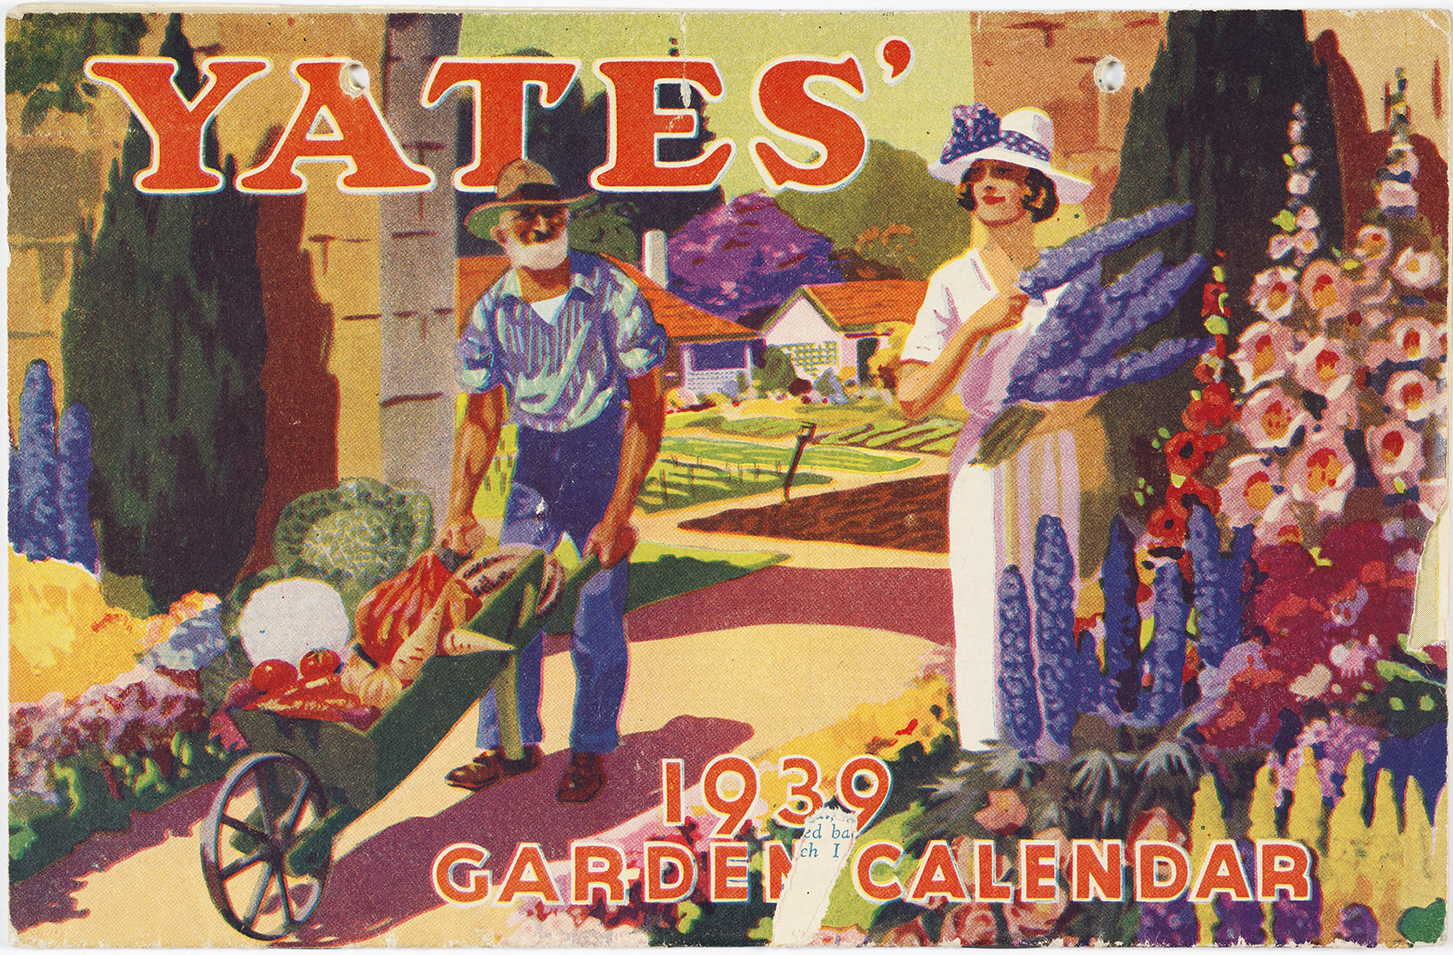 1939 Calendar cover depicting a colourful oil painting of a man and woman in a garden.